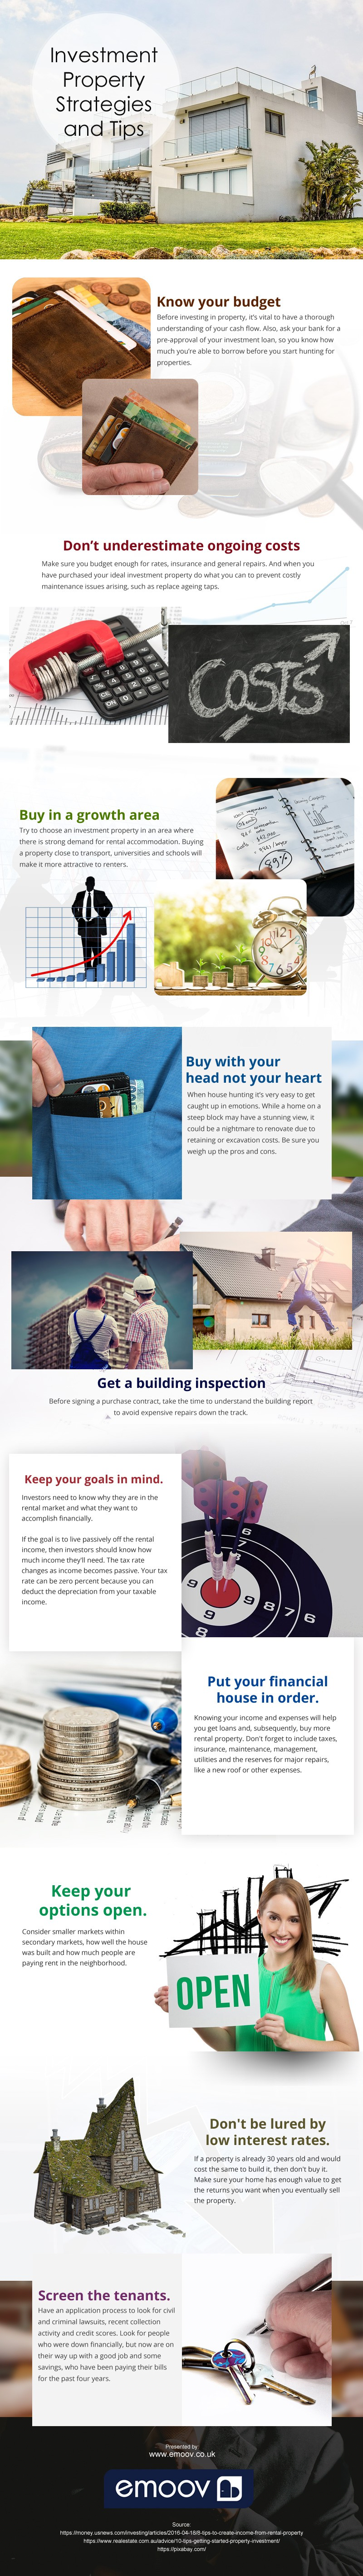 Investment-Property-Strategies-and-Tips Infographic